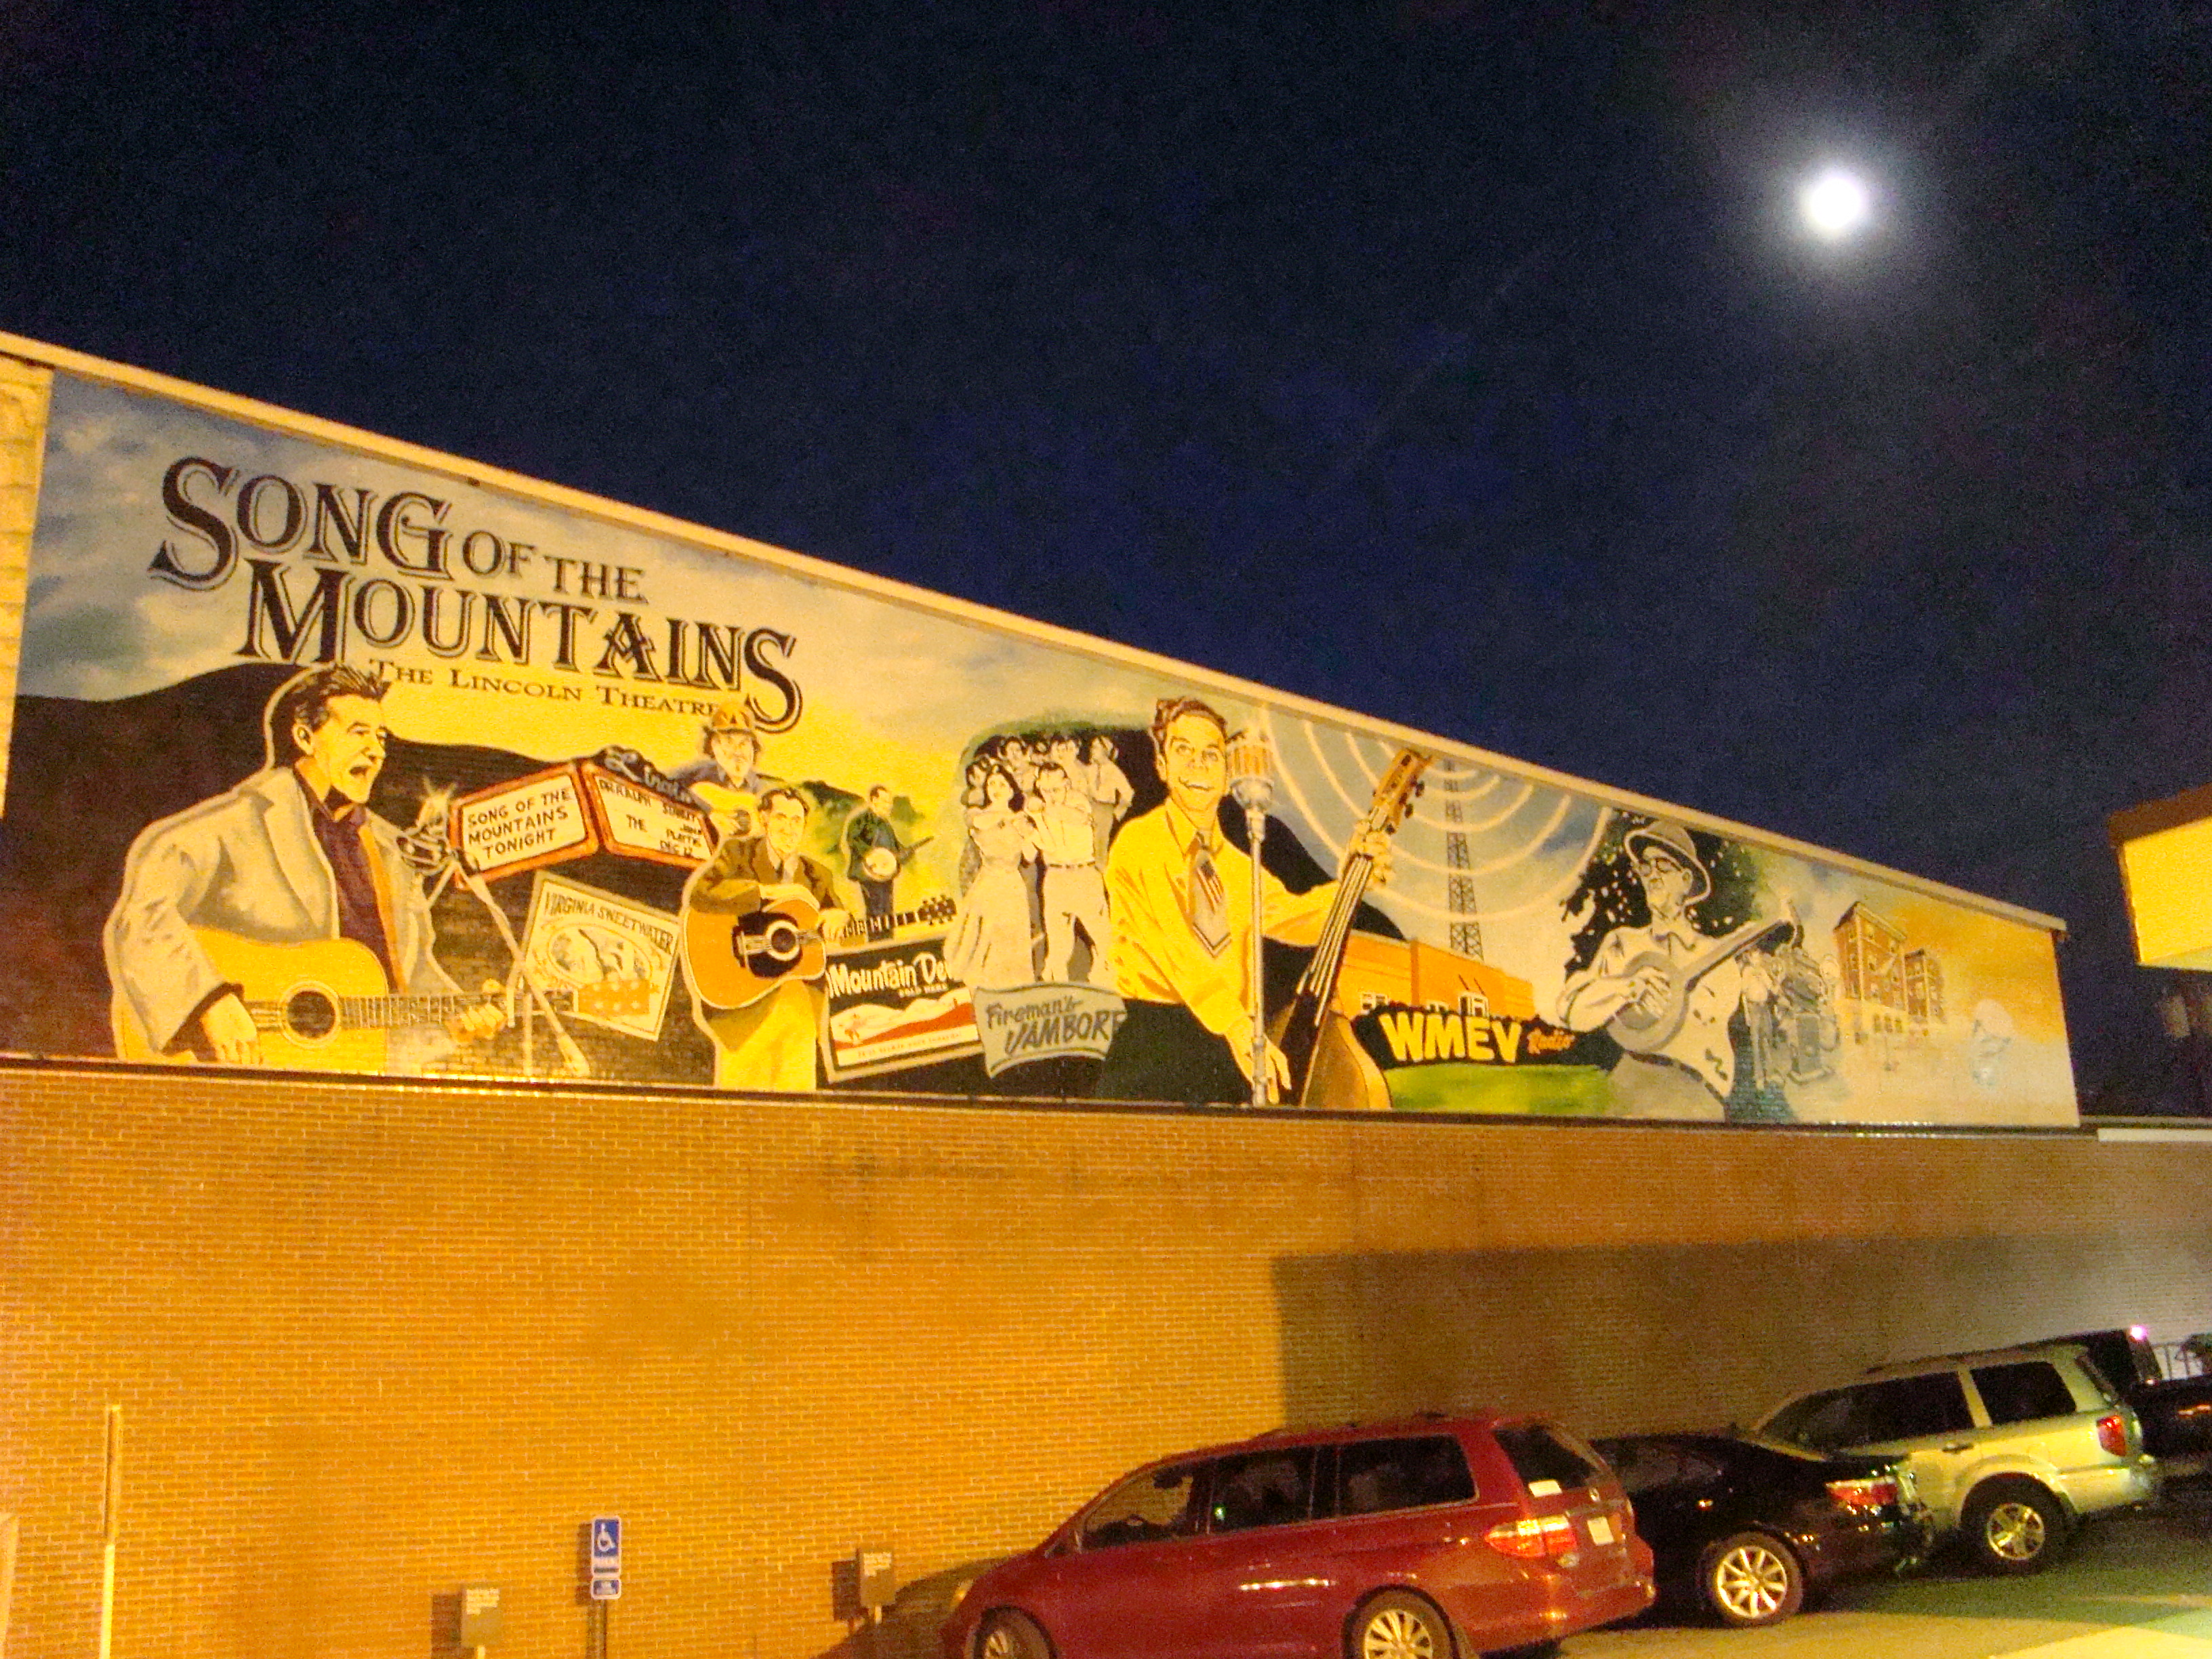 Marion Mural @ night